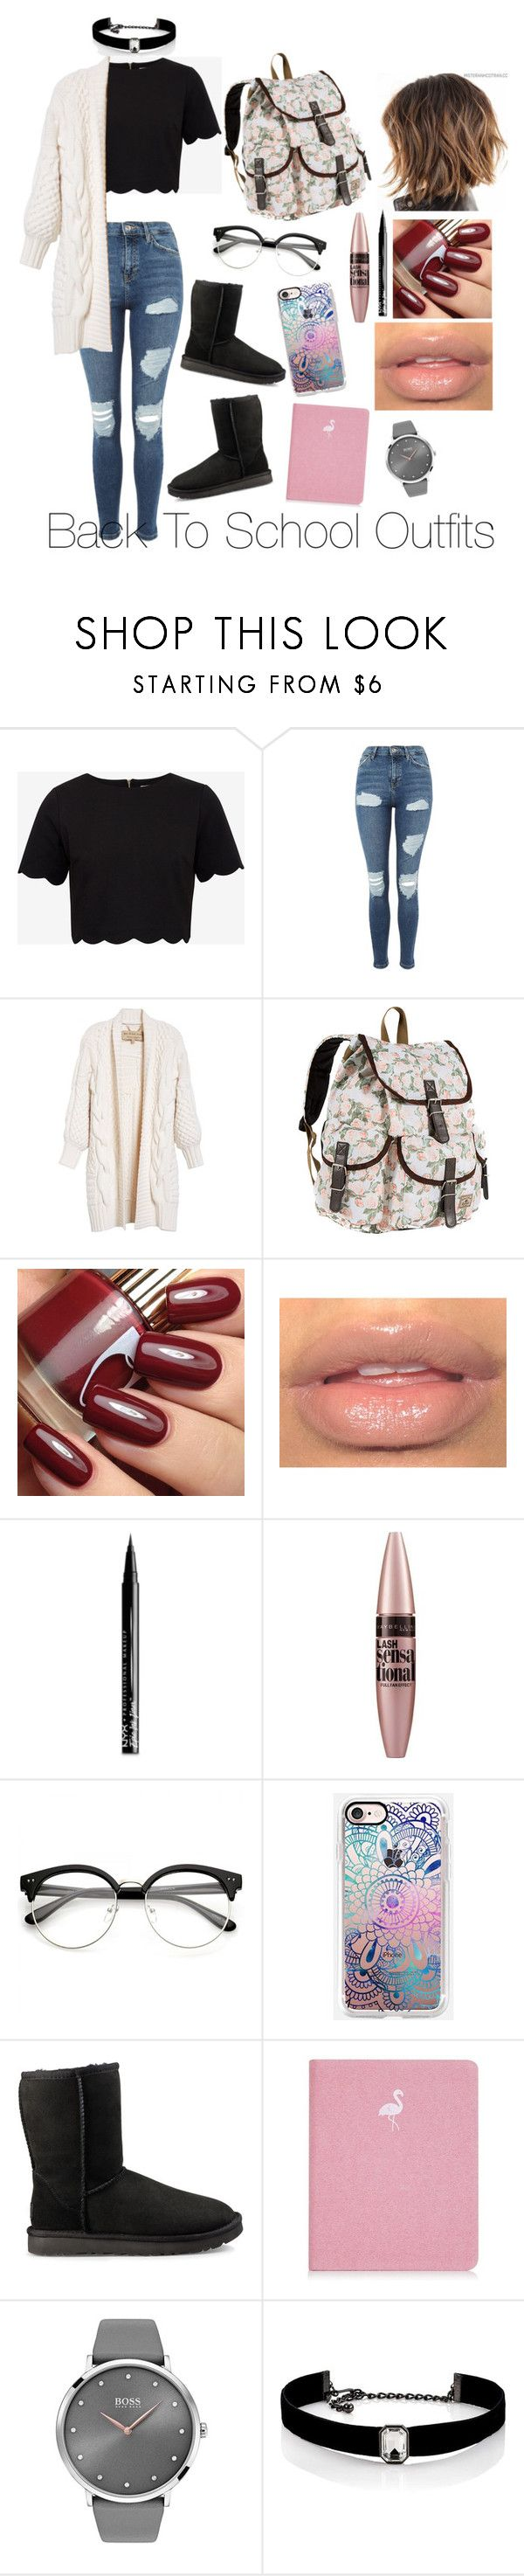 """""""Back To School Outfits #46"""" by gussied-up on Polyvore featuring Ted Baker, Topshop, Burberry, Everest, NYX, Maybelline, Casetify, UGG, BOSS Black and Kenneth Jay Lane"""